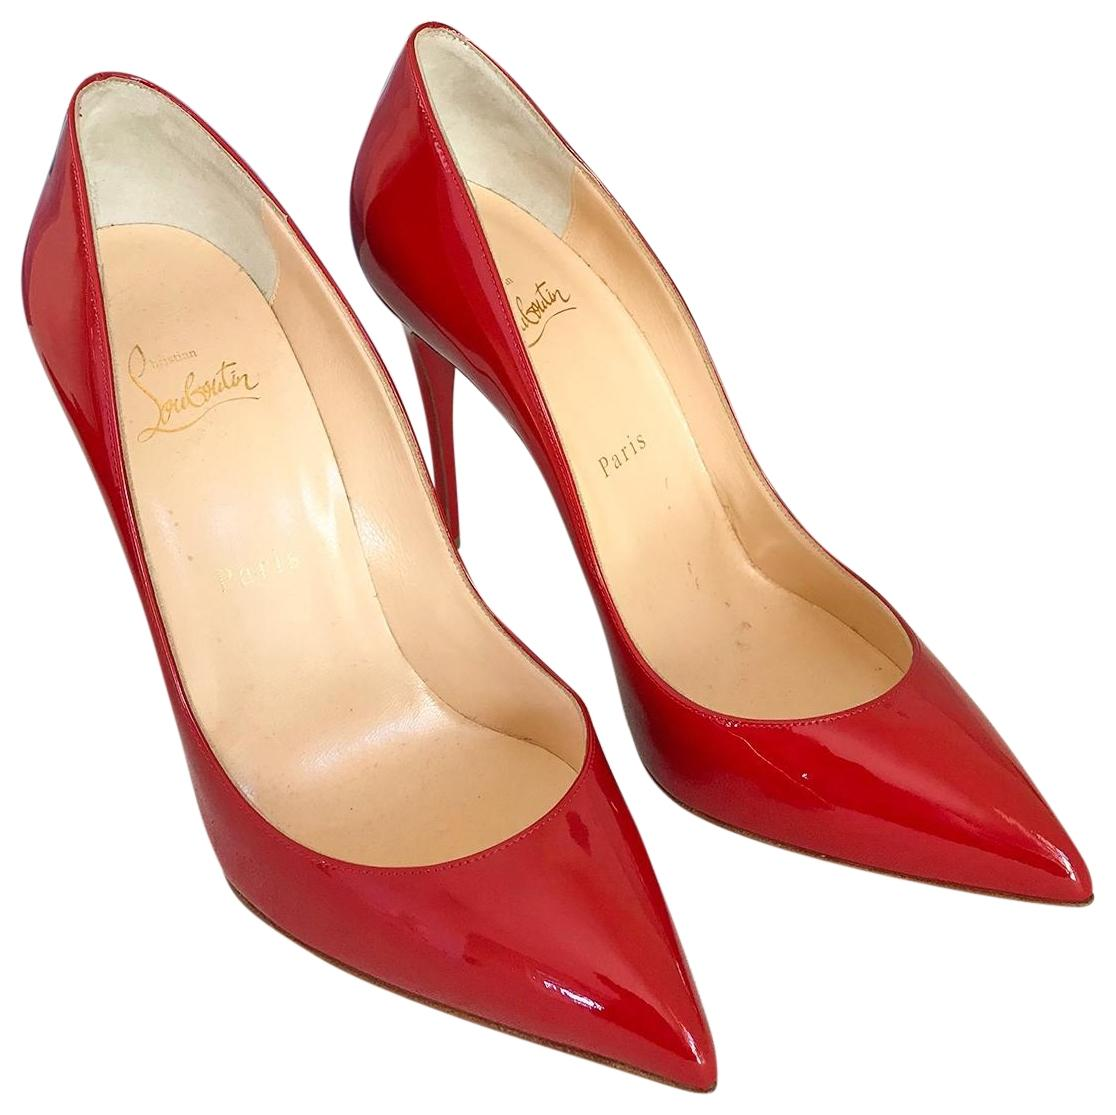 91a13e47f30 Christian Louboutin Red Patent Leather So Kate Kate Kate Pumps Size EU 39  (Approx. US 9) Regular (M